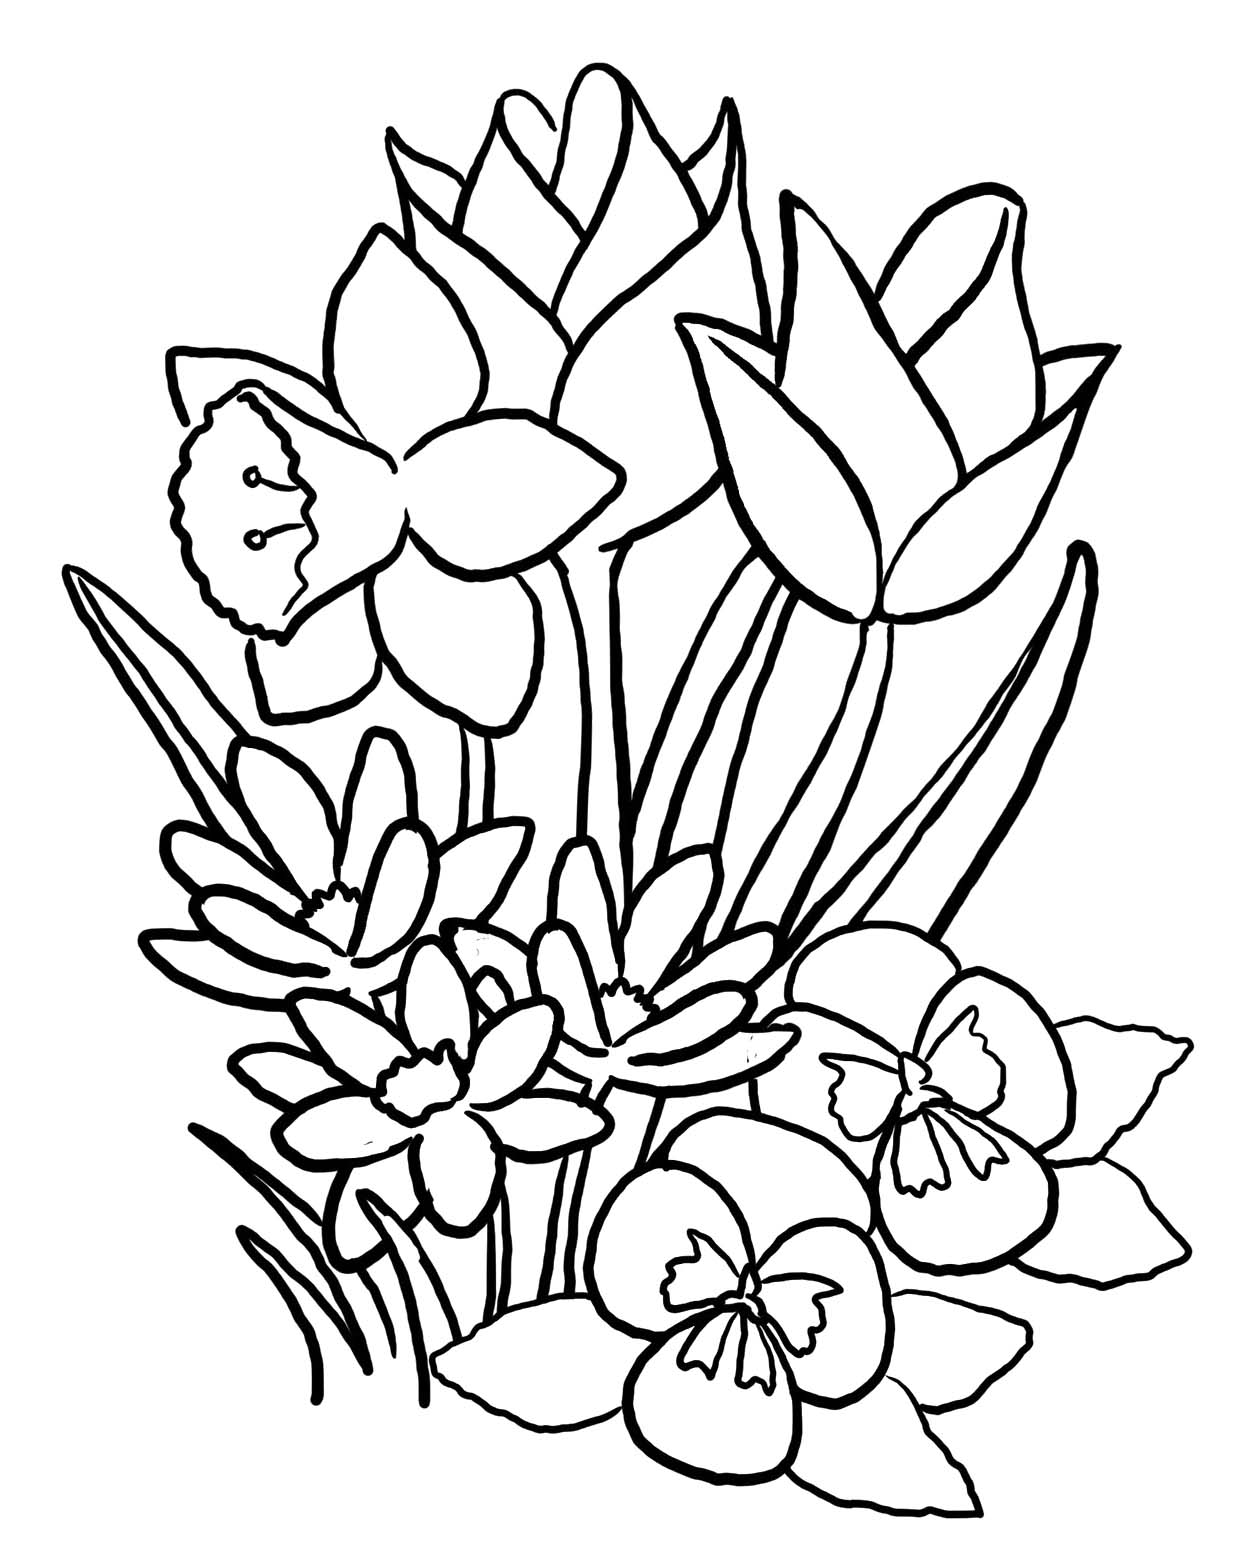 Attractive Flower Pictures To Print And Color